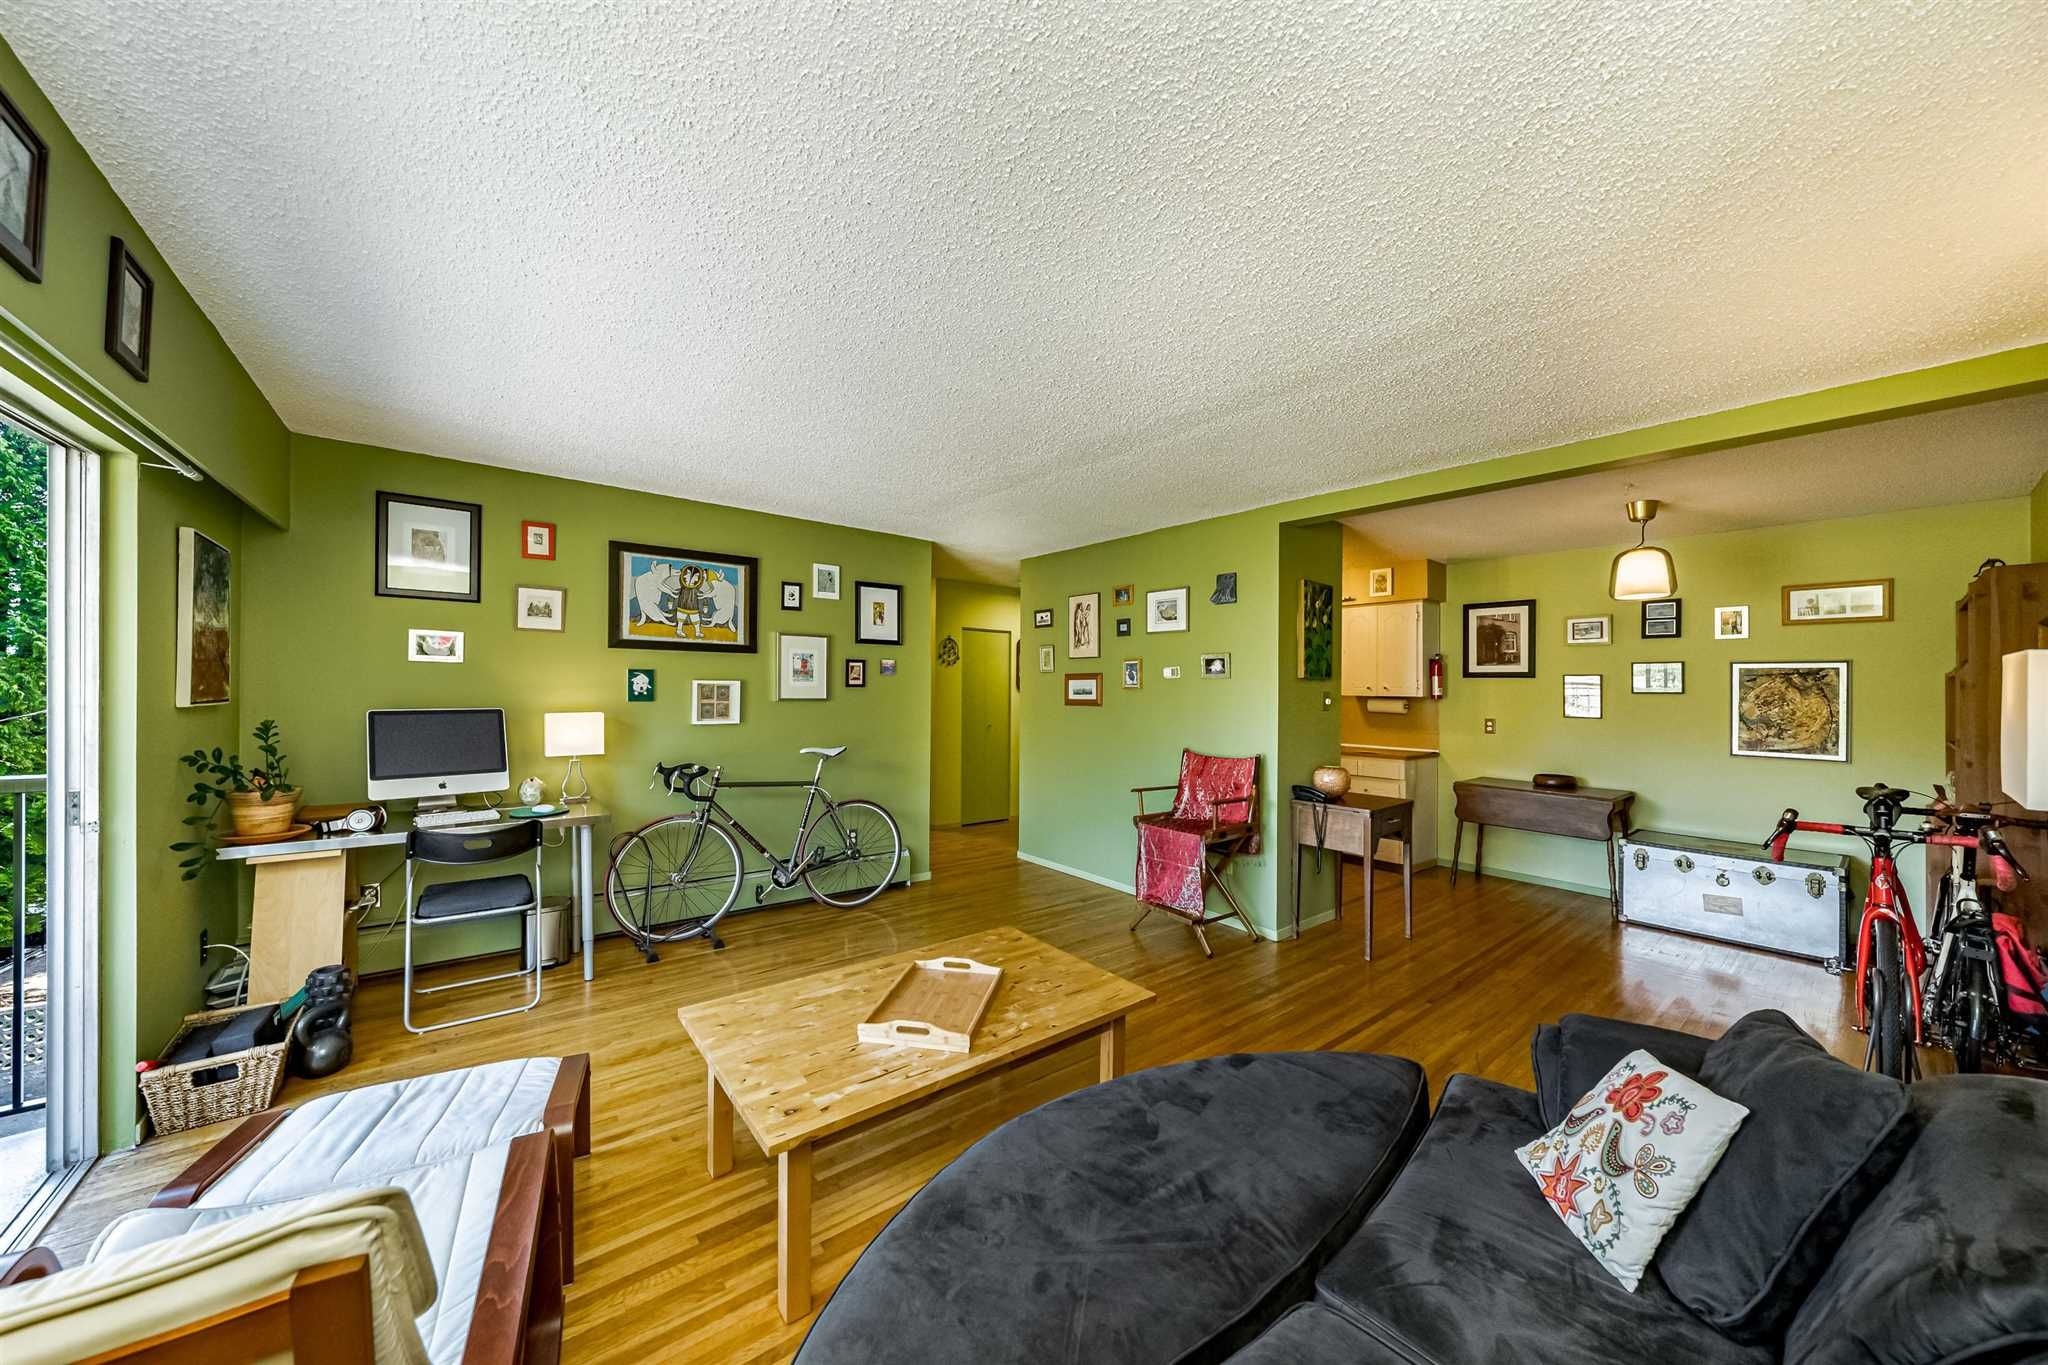 Photo 6: Photos: 57 2002 ST JOHNS Street in Port Moody: Port Moody Centre Condo for sale : MLS®# R2602252